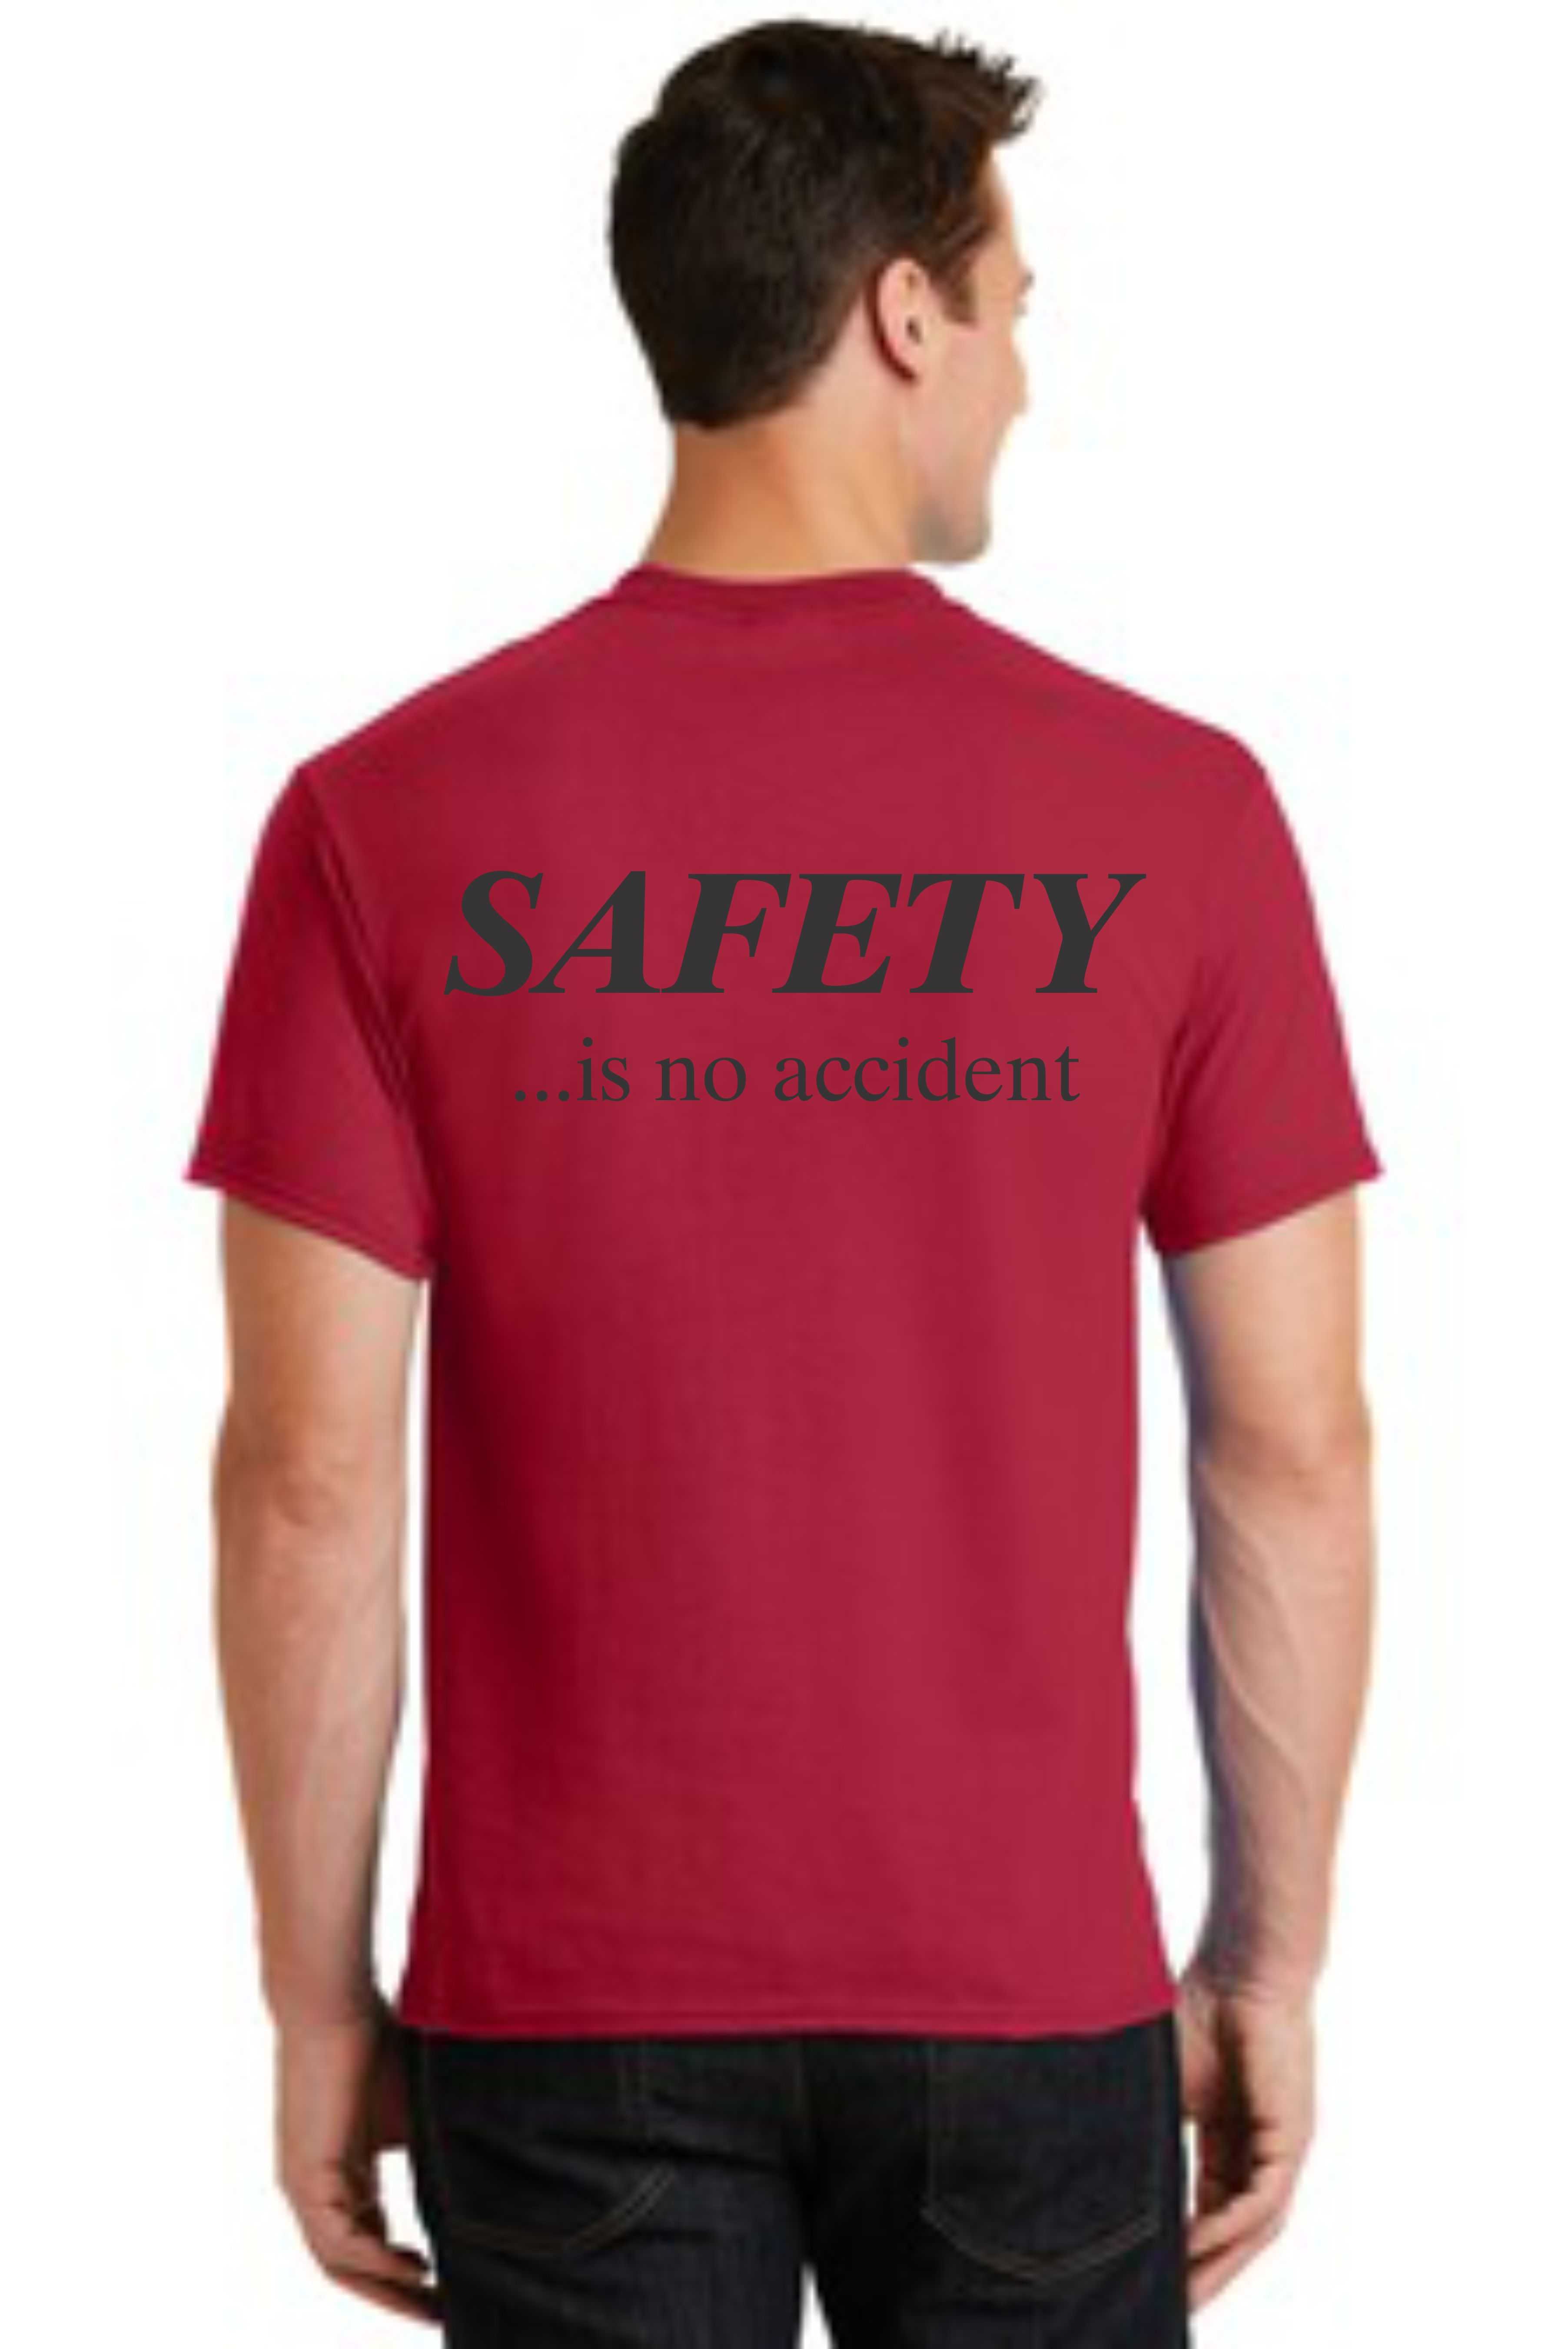 SAFETY T-SHIRT -- SAFETY... IS NO ACCIDENT